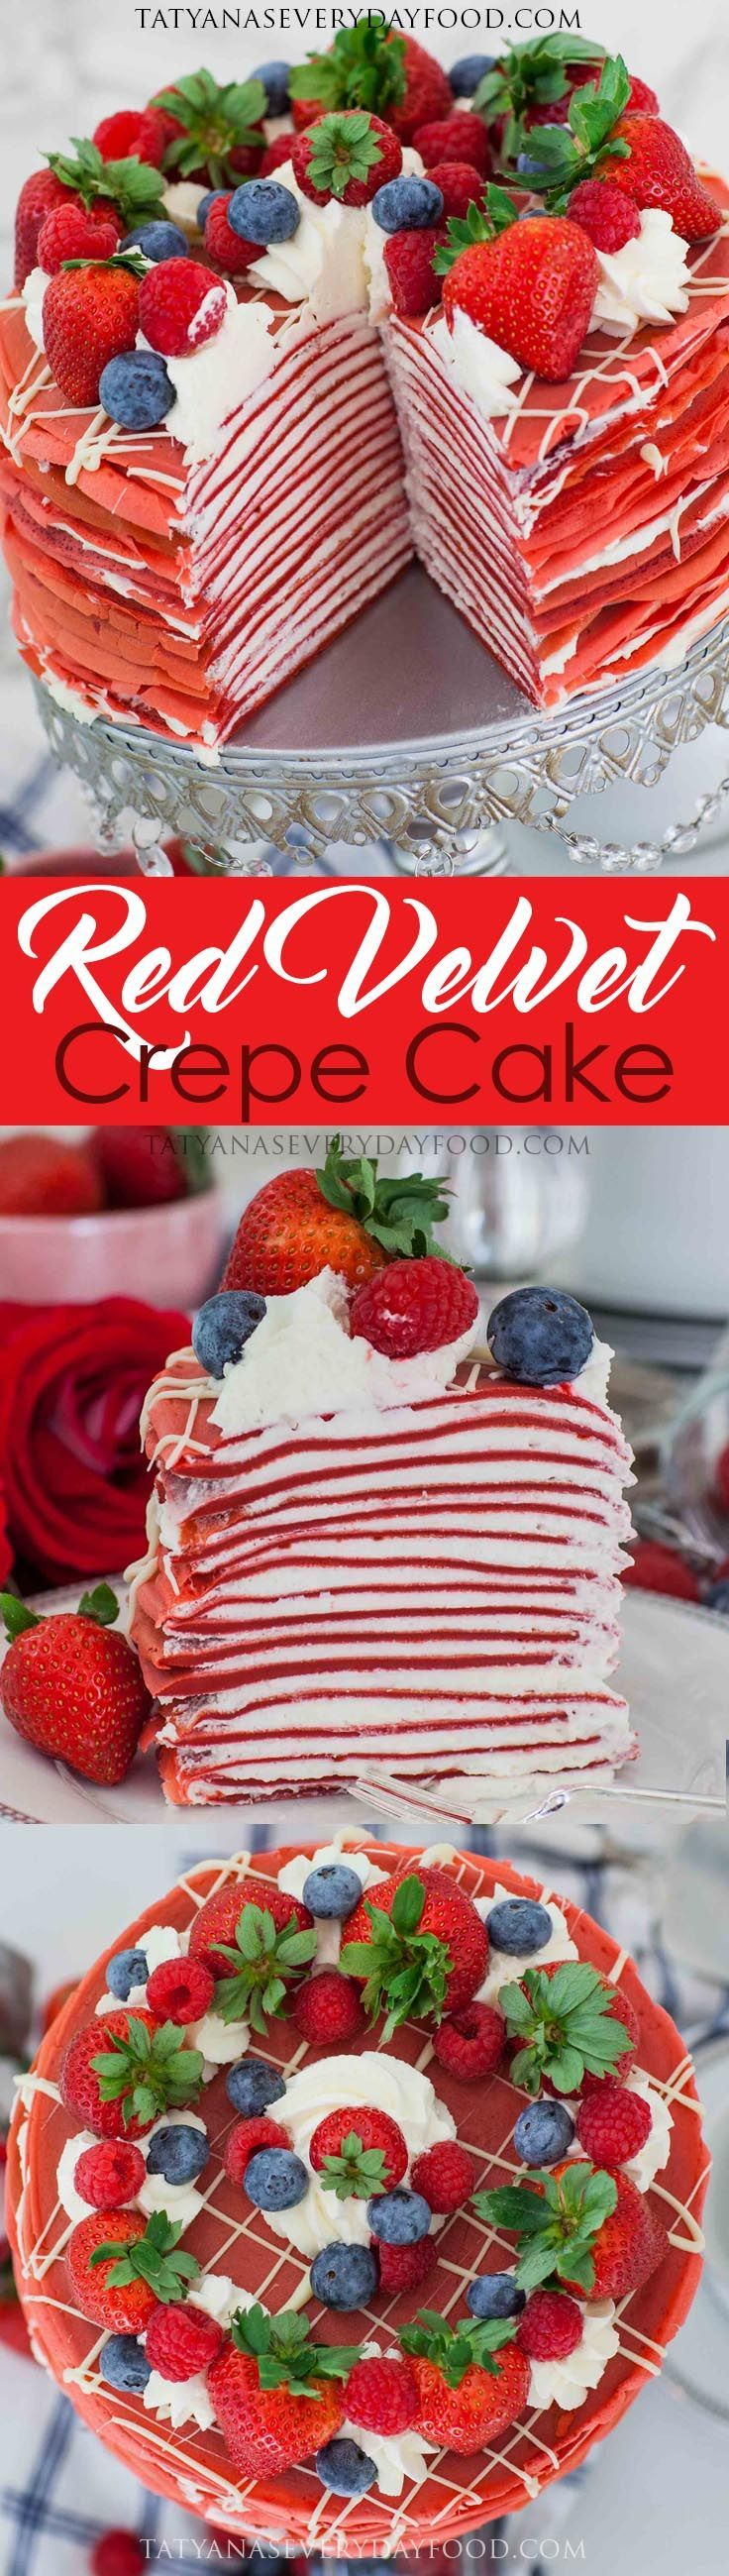 Red Velvet Crepe Cake - Tatyanas Everyday Food